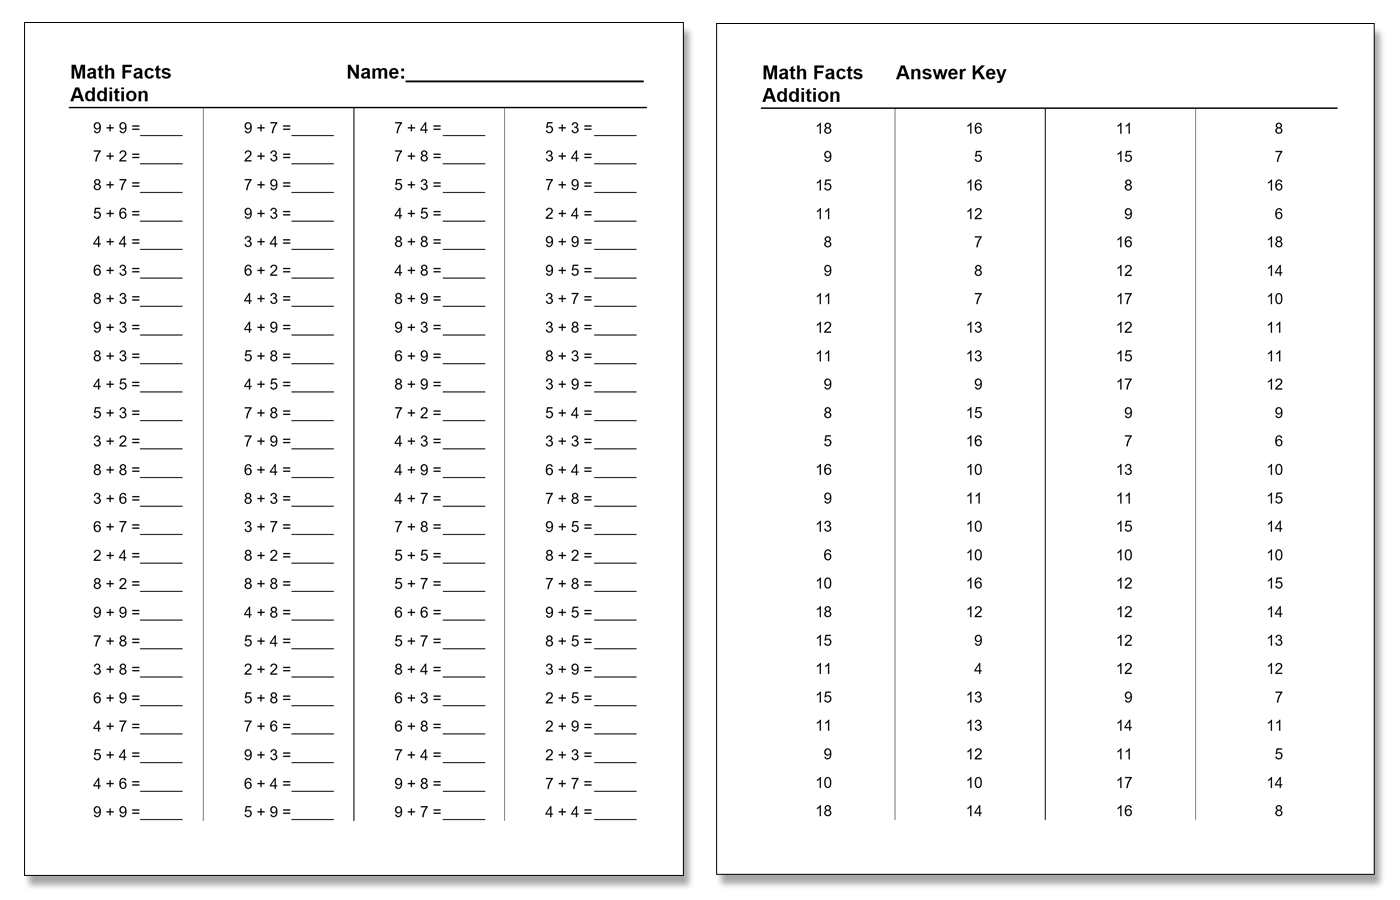 Math Facts Worksheet Generator Just Another Stephen